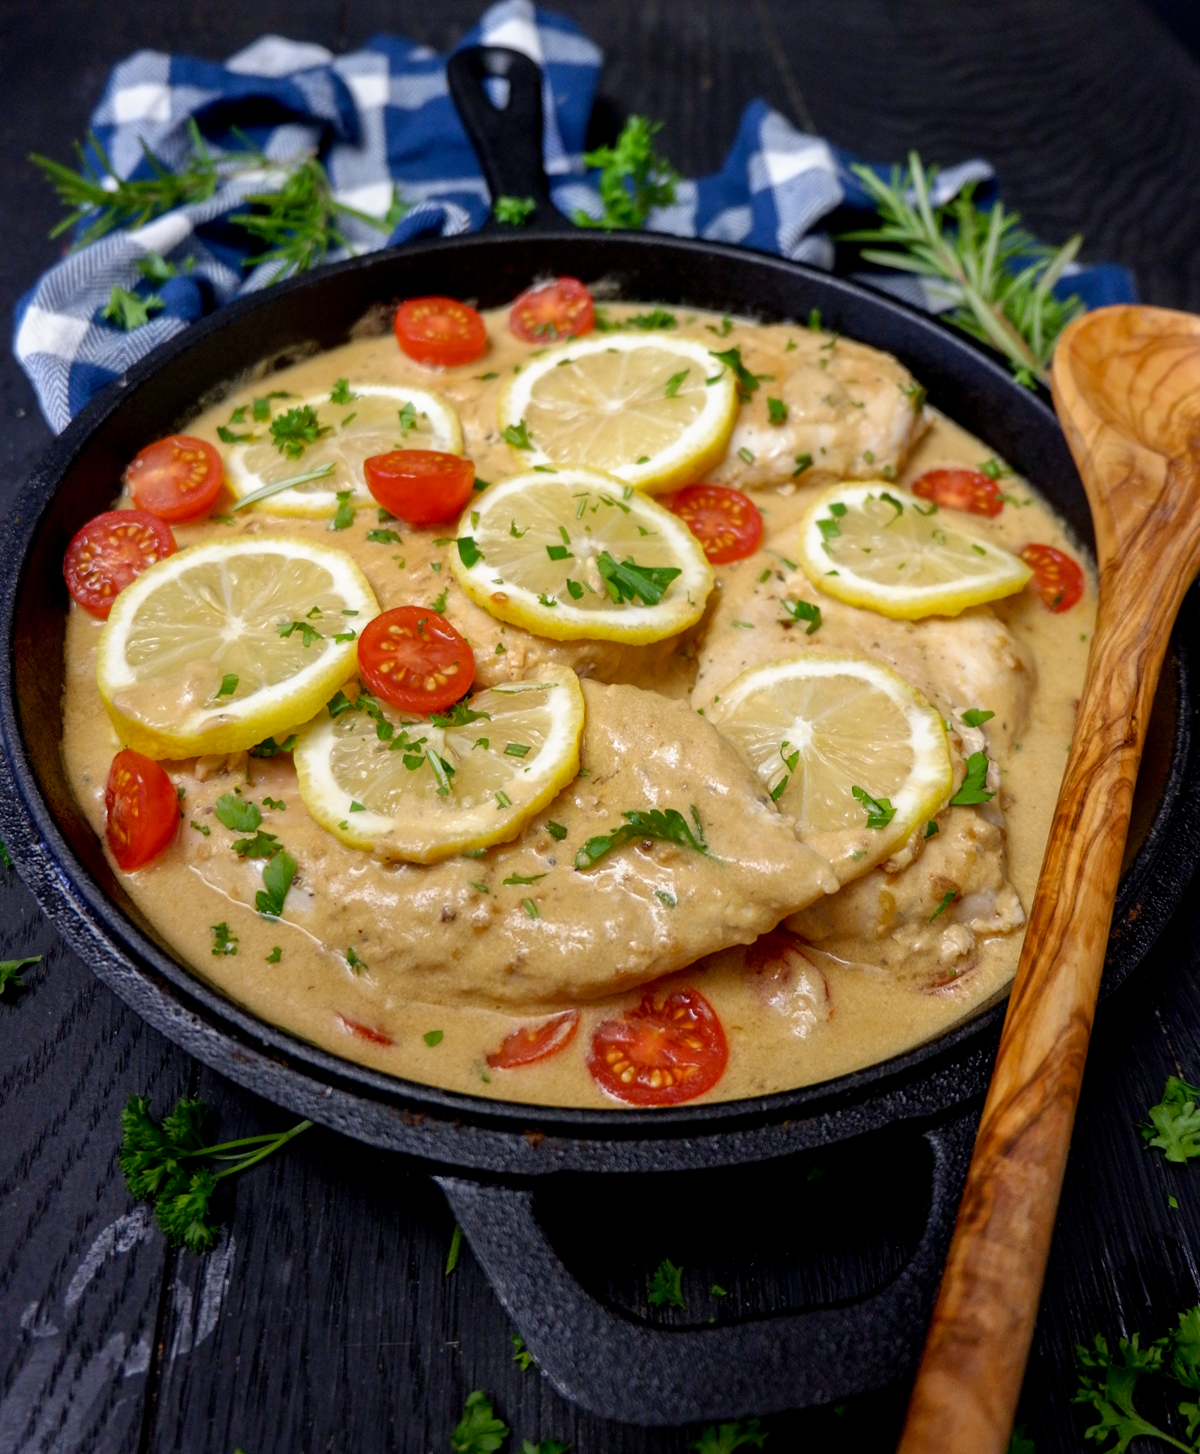 Cast Iron Skillet Creamy Lemon Chicken is the perfect weeknight meal! A simple cream sauce, garlic, fresh rosemary and other herbs for a delicious flavour.